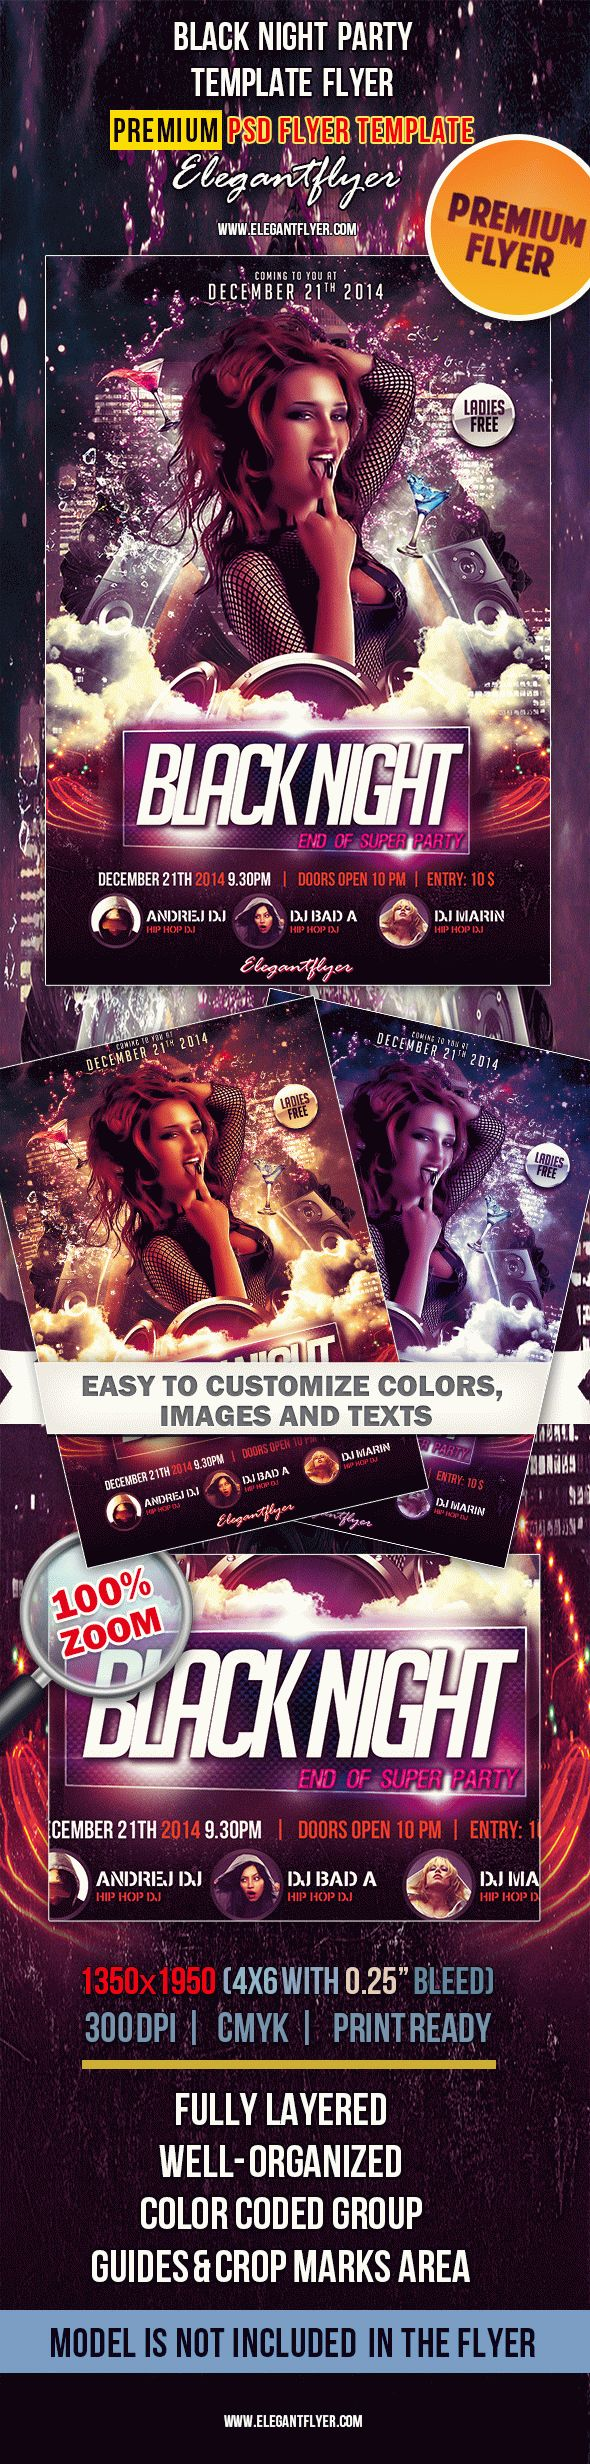 Black Night Party – Premium Club flyer PSD Template